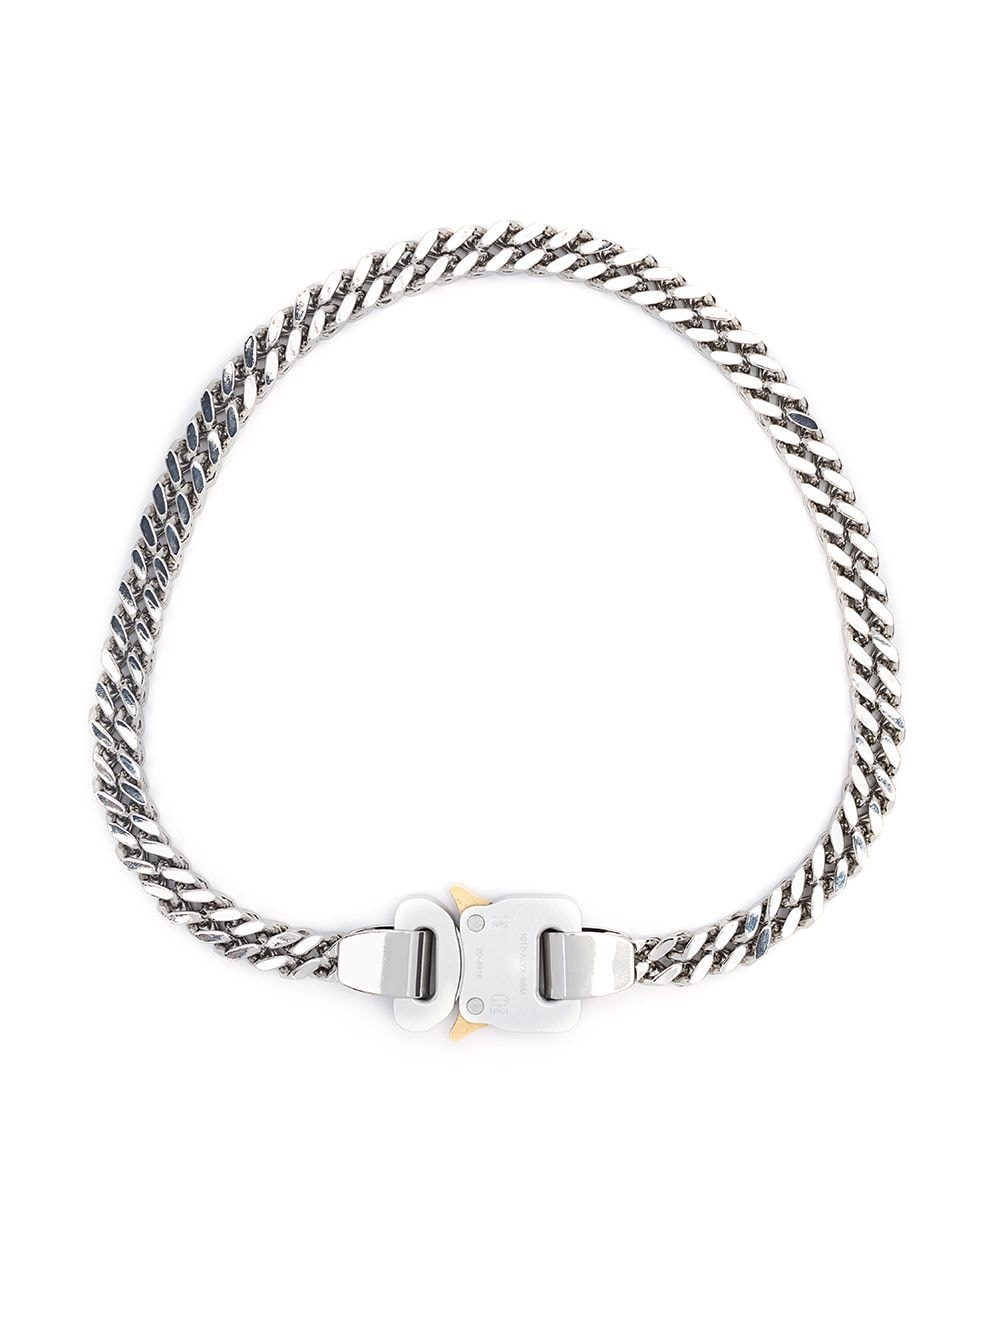 1017 ALYX 9SM UNISEX CUBIX CHAIN NECKLACE